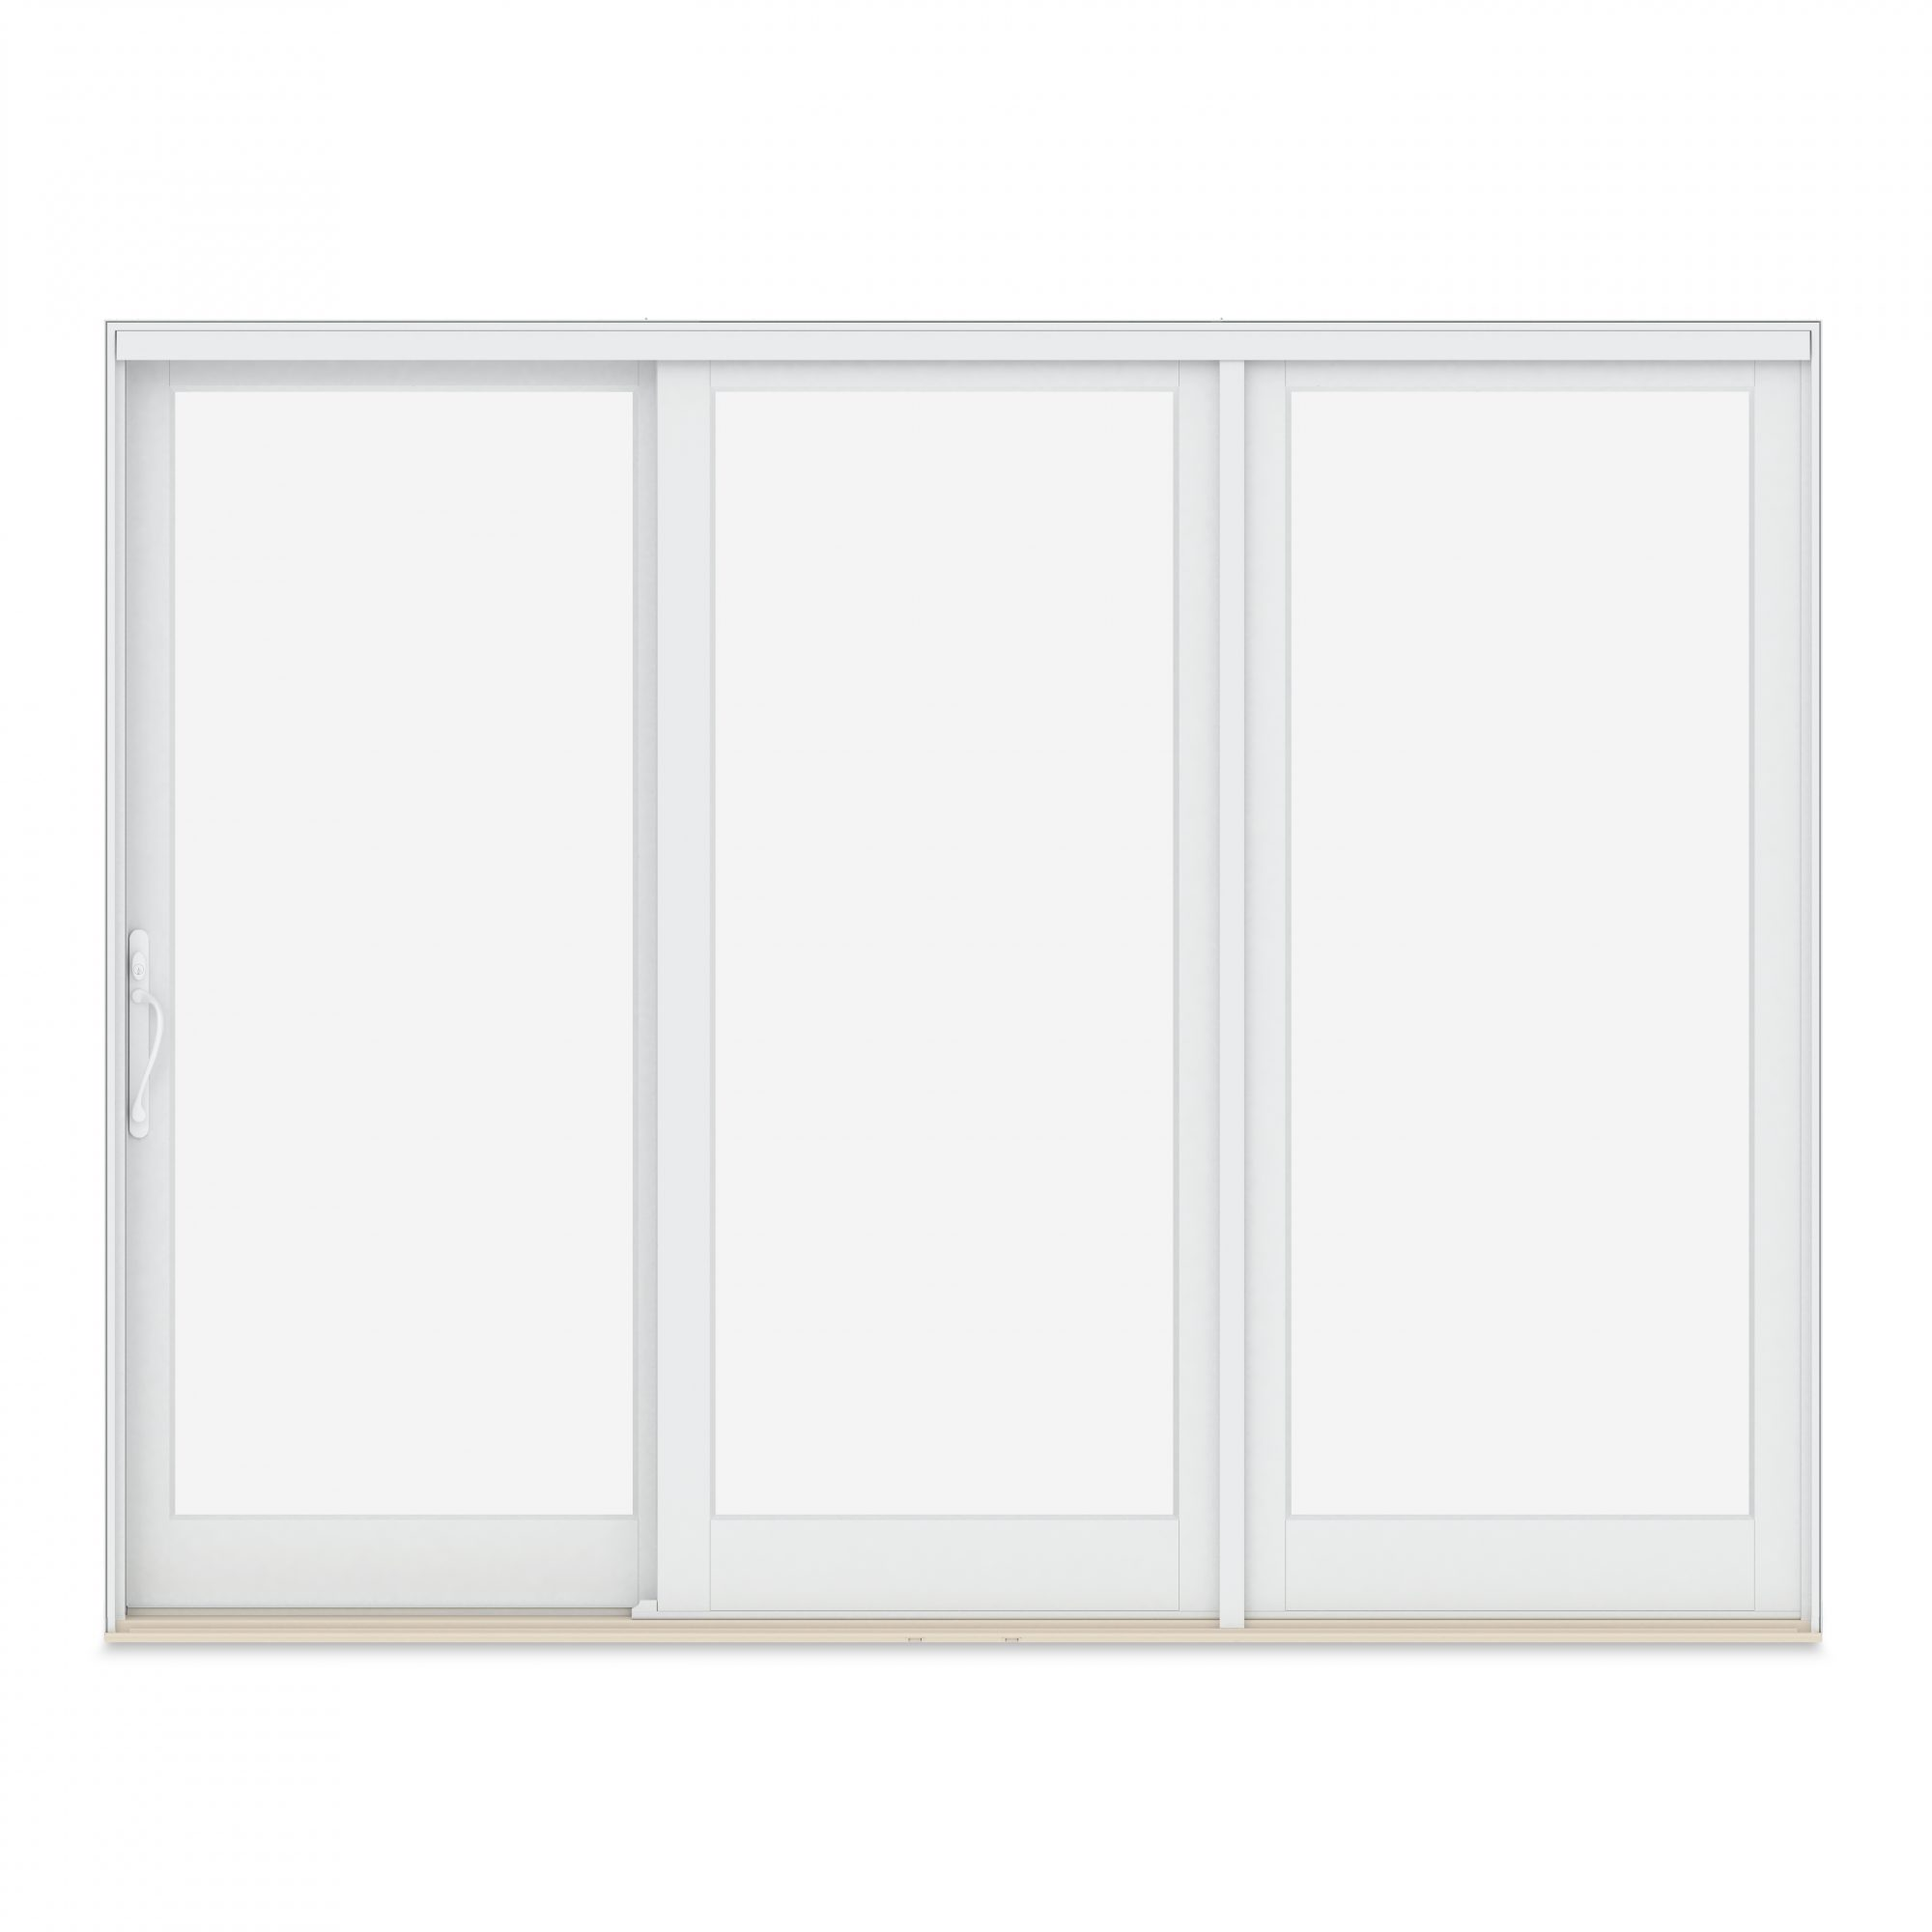 Patio Furniture Repair Knoxville Tn: Replacement Sliding French Doors